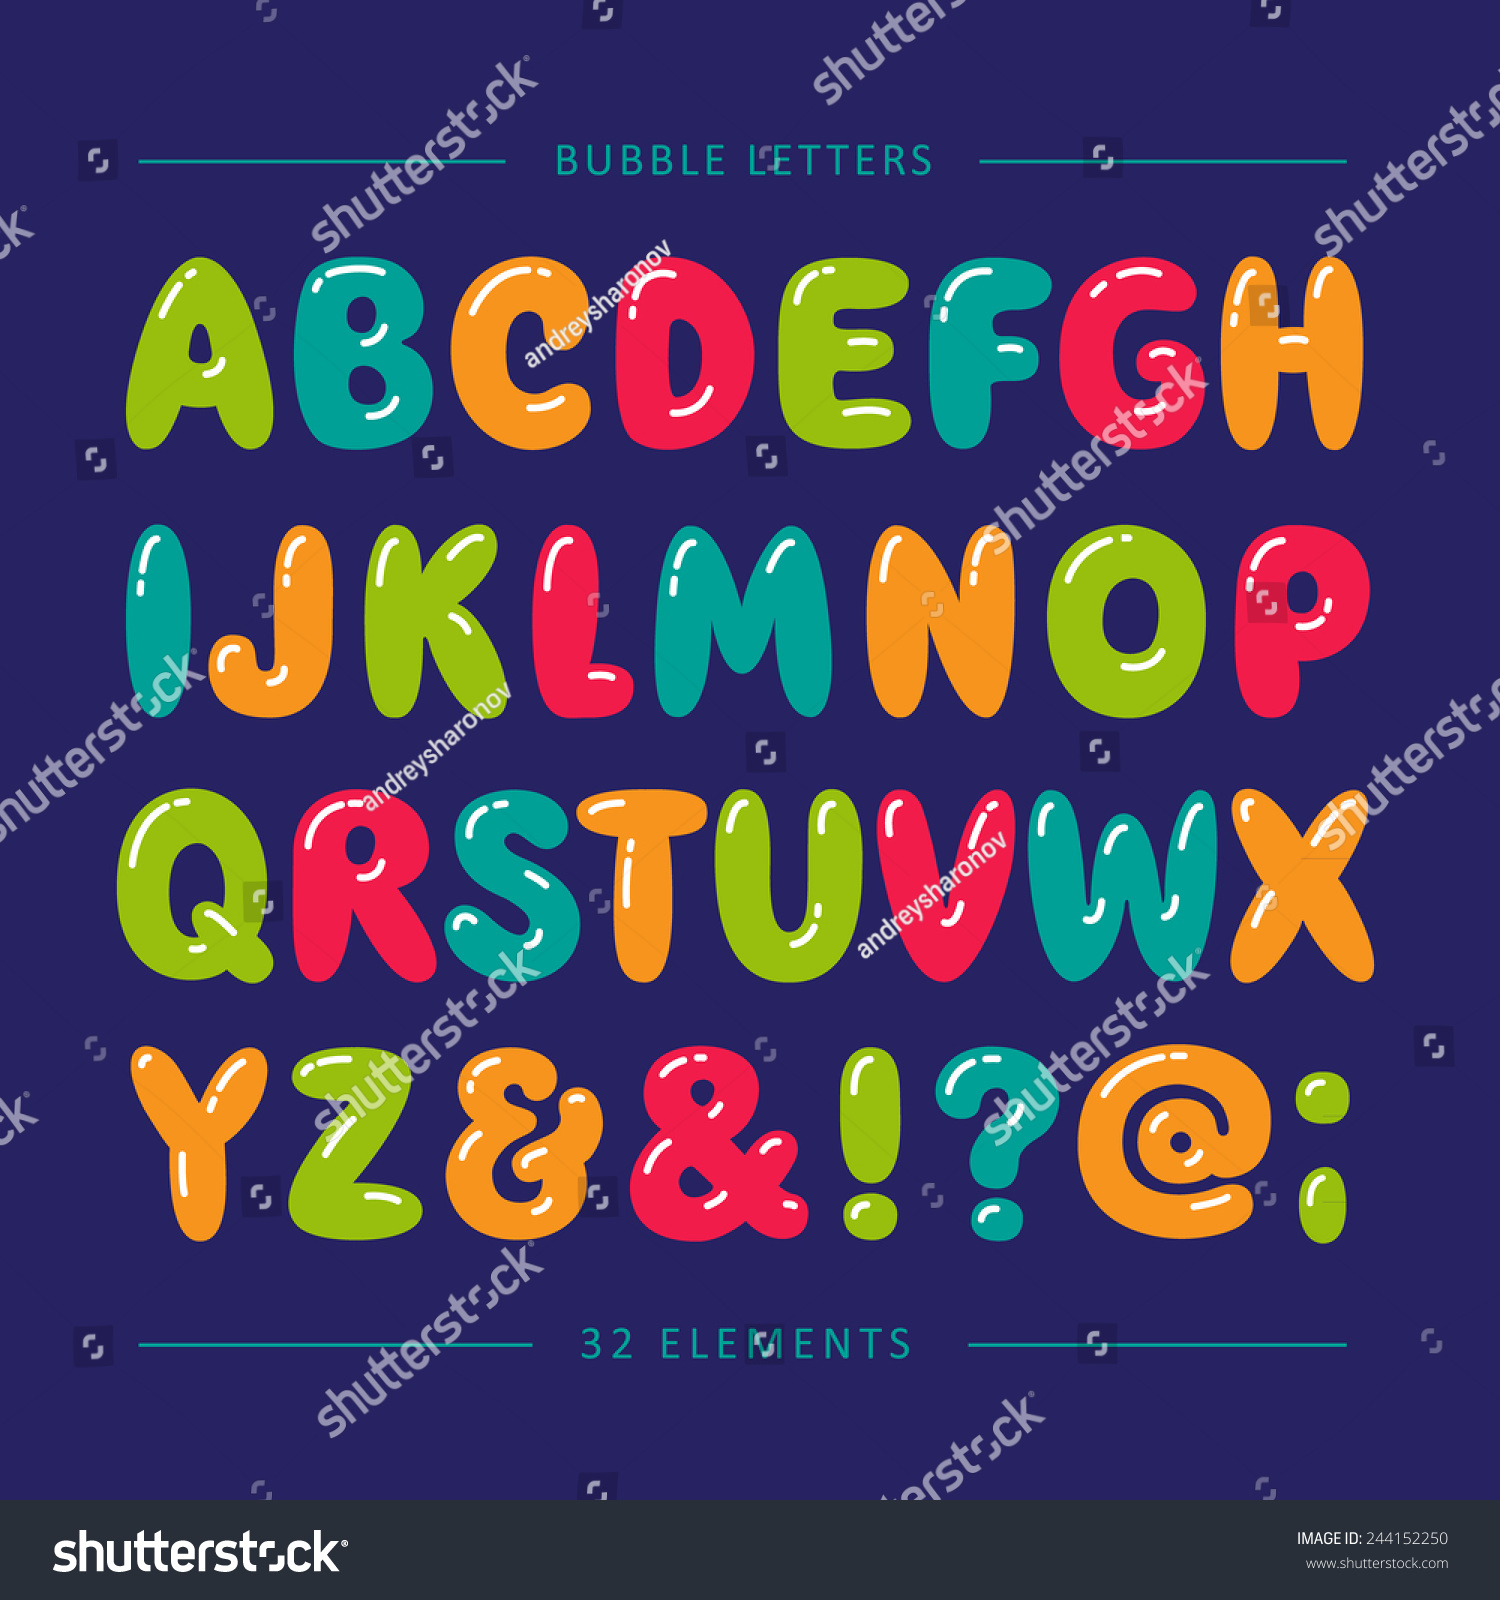 Cartoon Bubble Font Colorful Letters With Glint